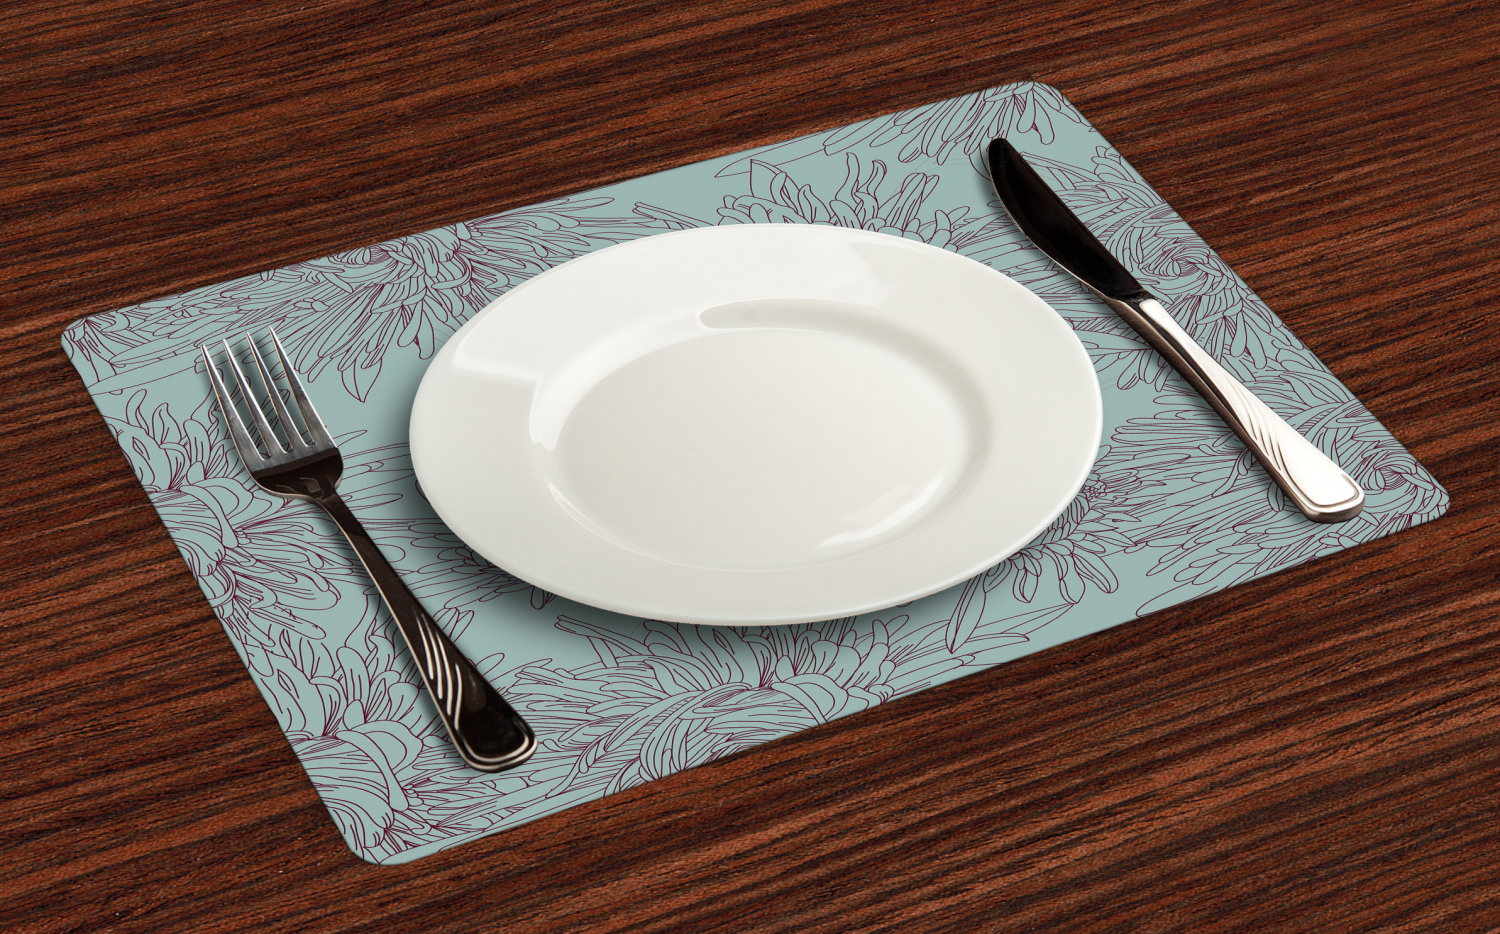 Ambesonne-Flower-Pattern-Placemat-Set-of-4-Fabric-Place-Mats-for-Table-Decor thumbnail 25